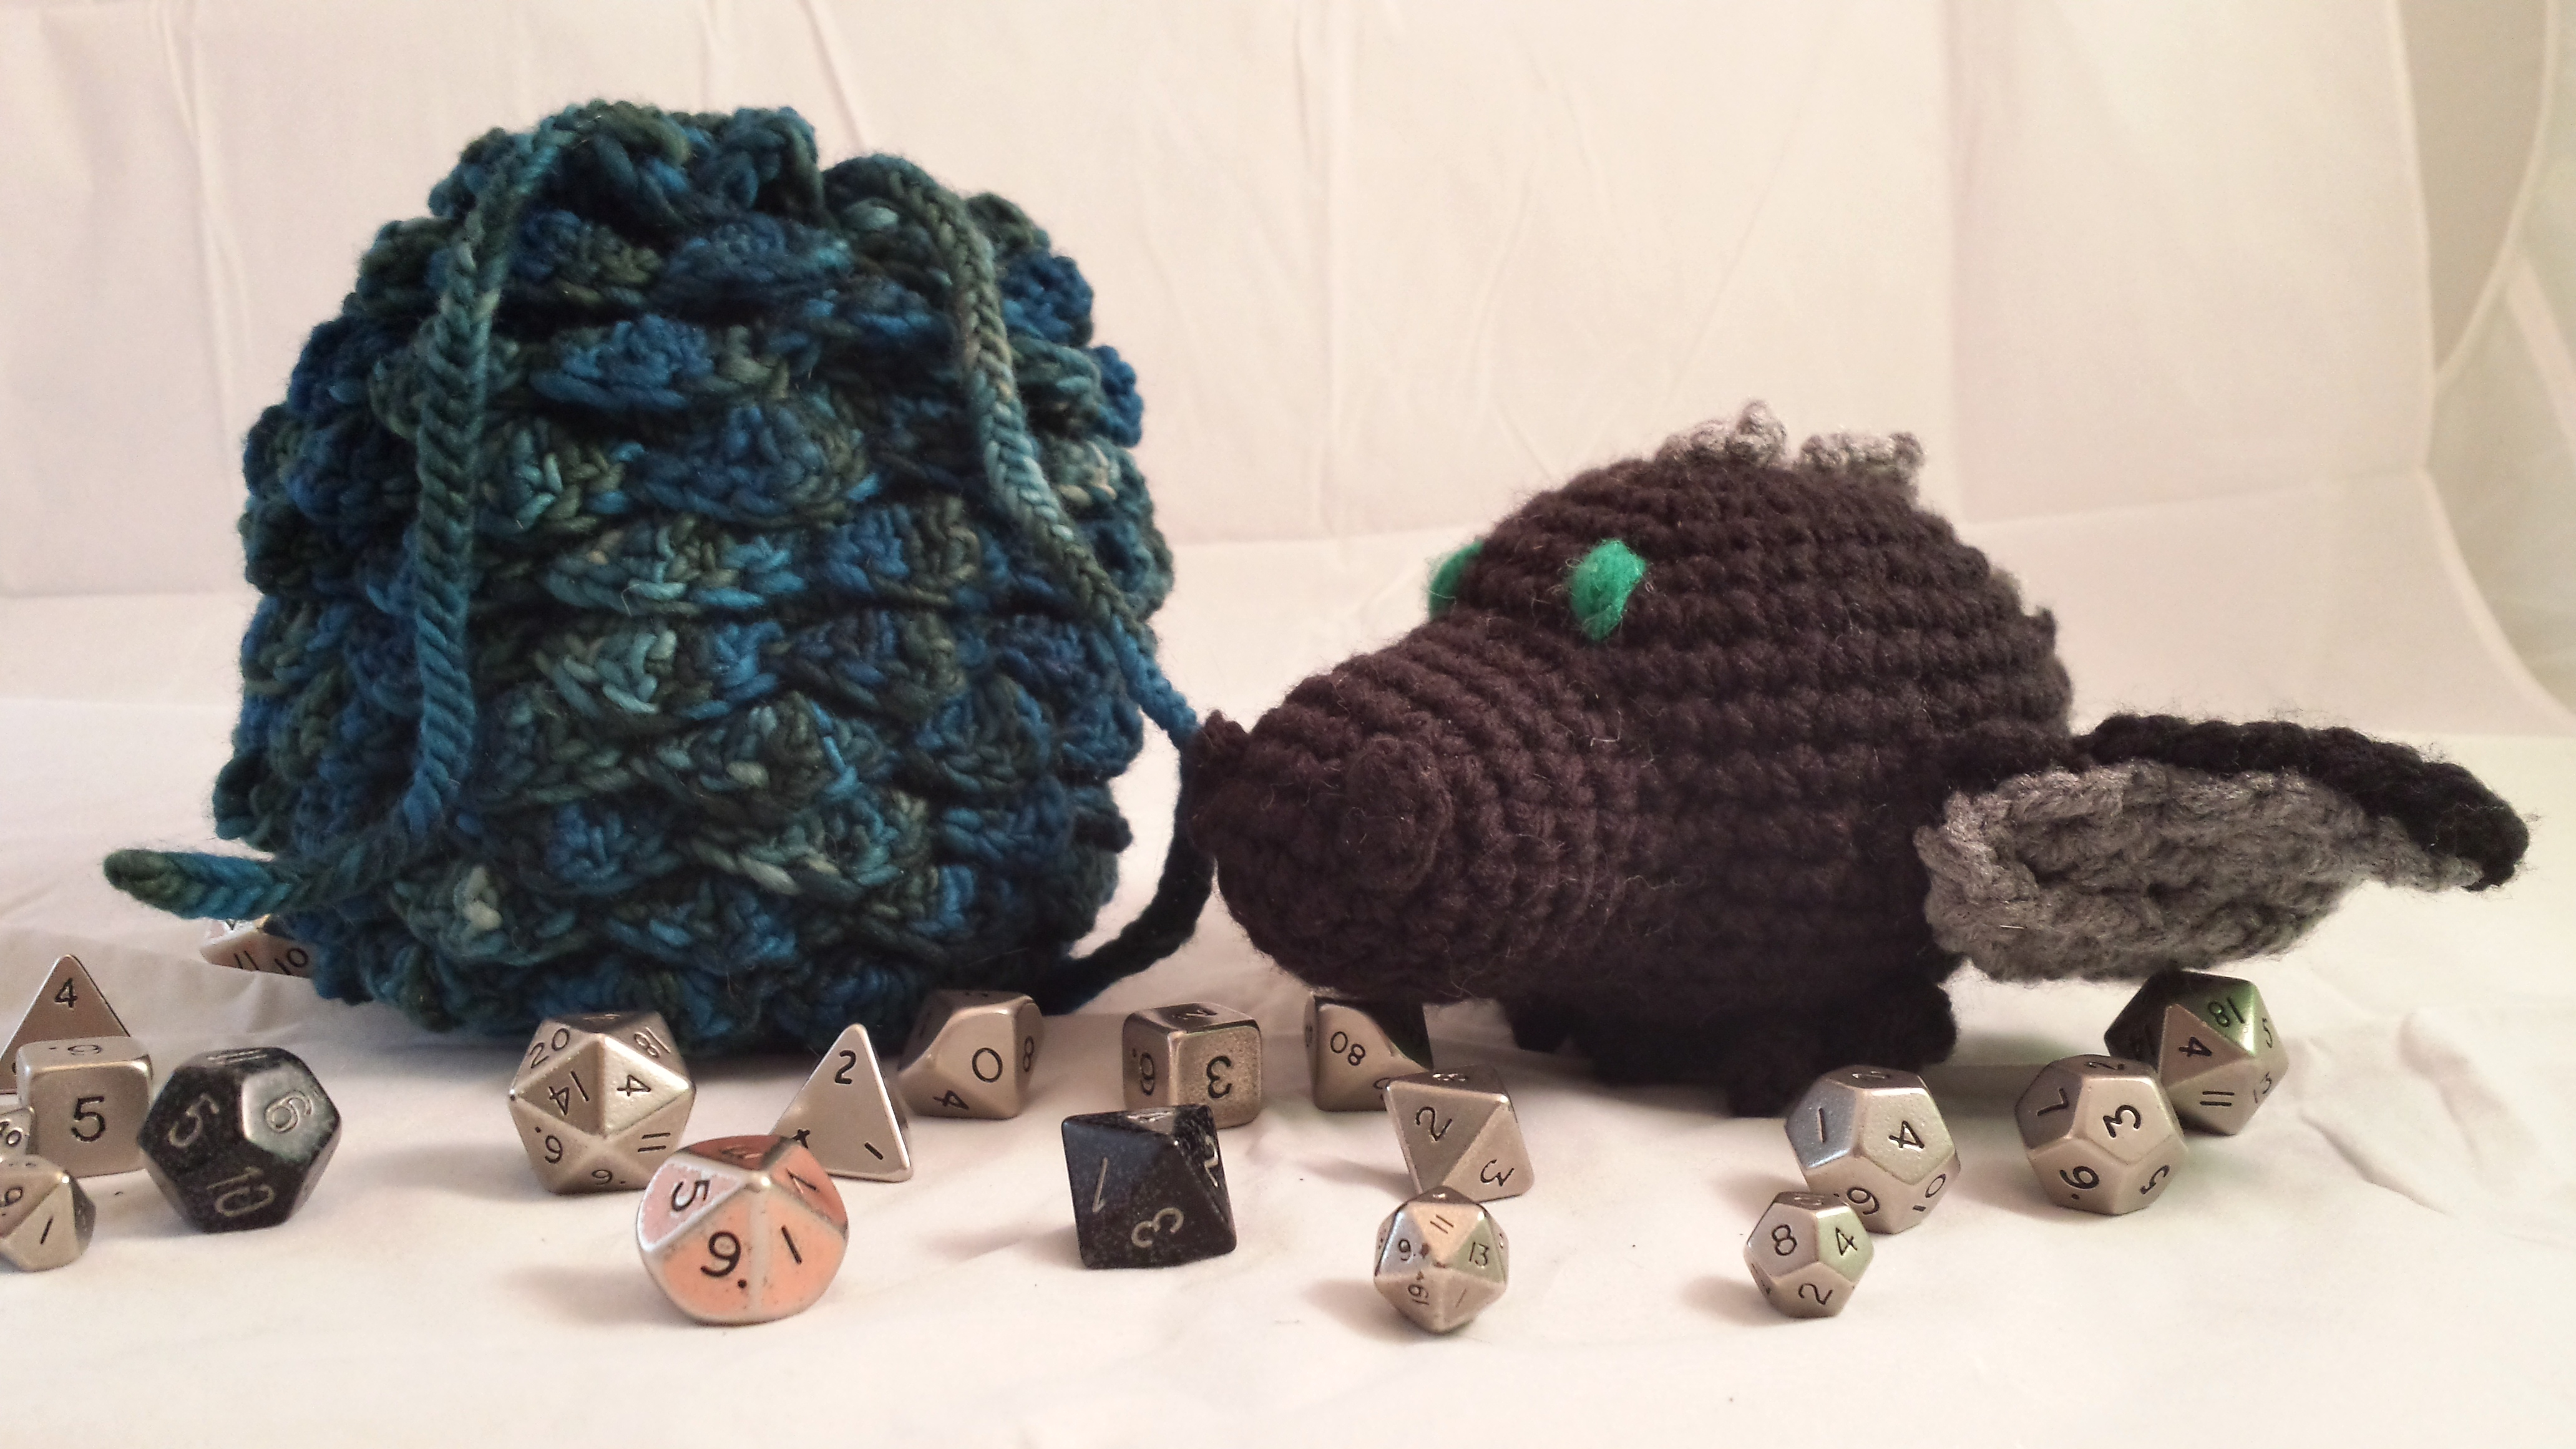 Dragon Hatchlyng and Dice Bag